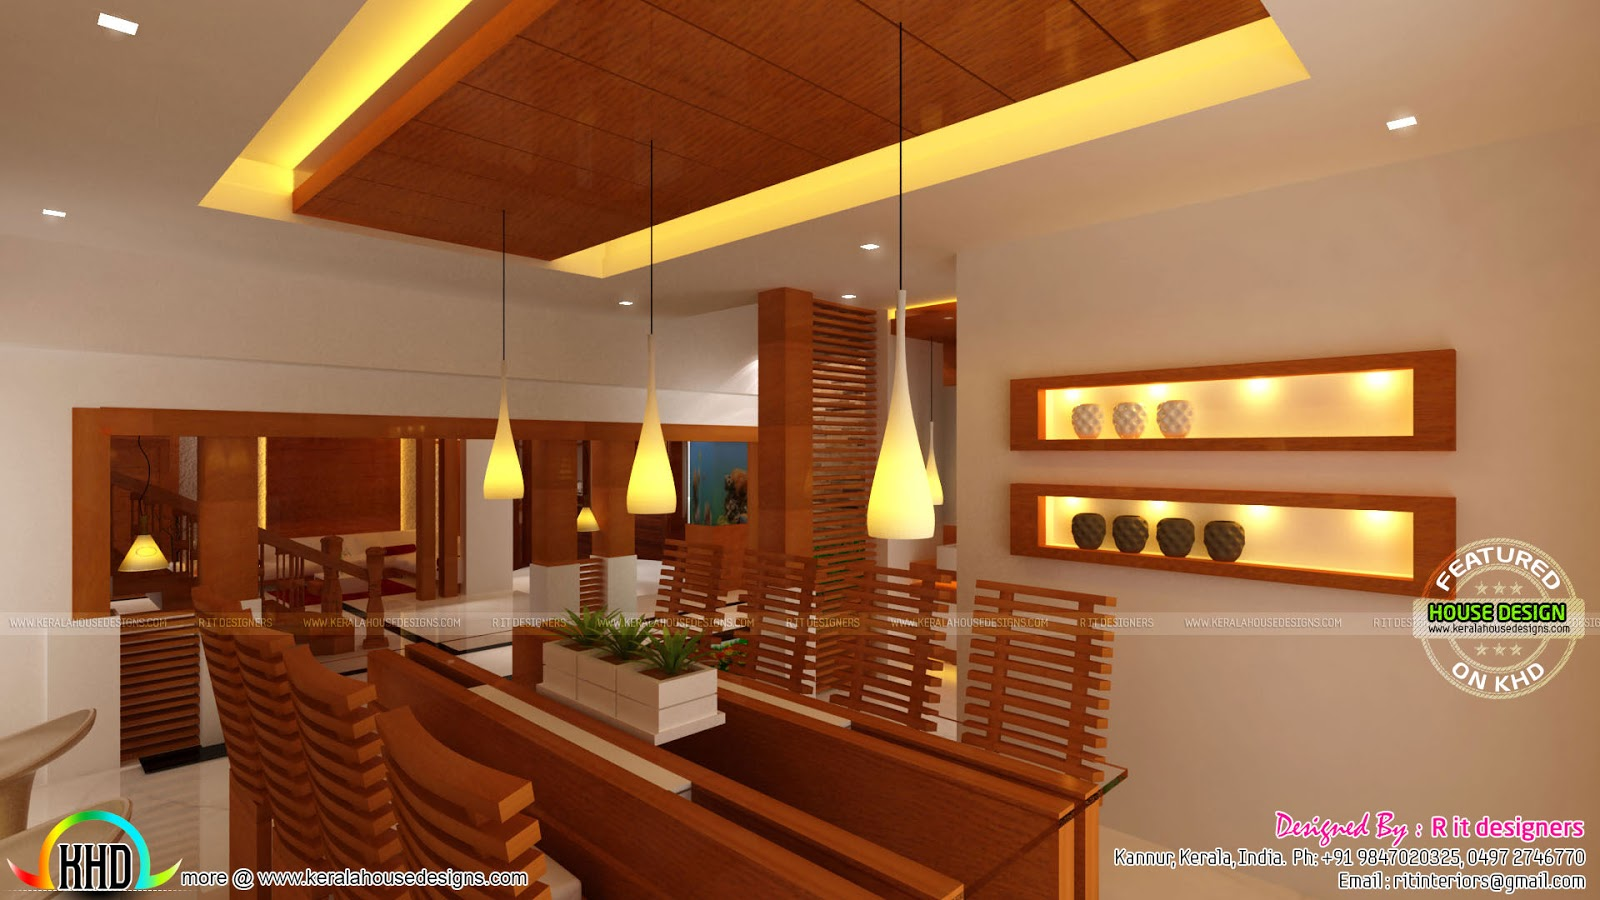 Wooden finish interior designs kerala home design and for Complete interior design of a house